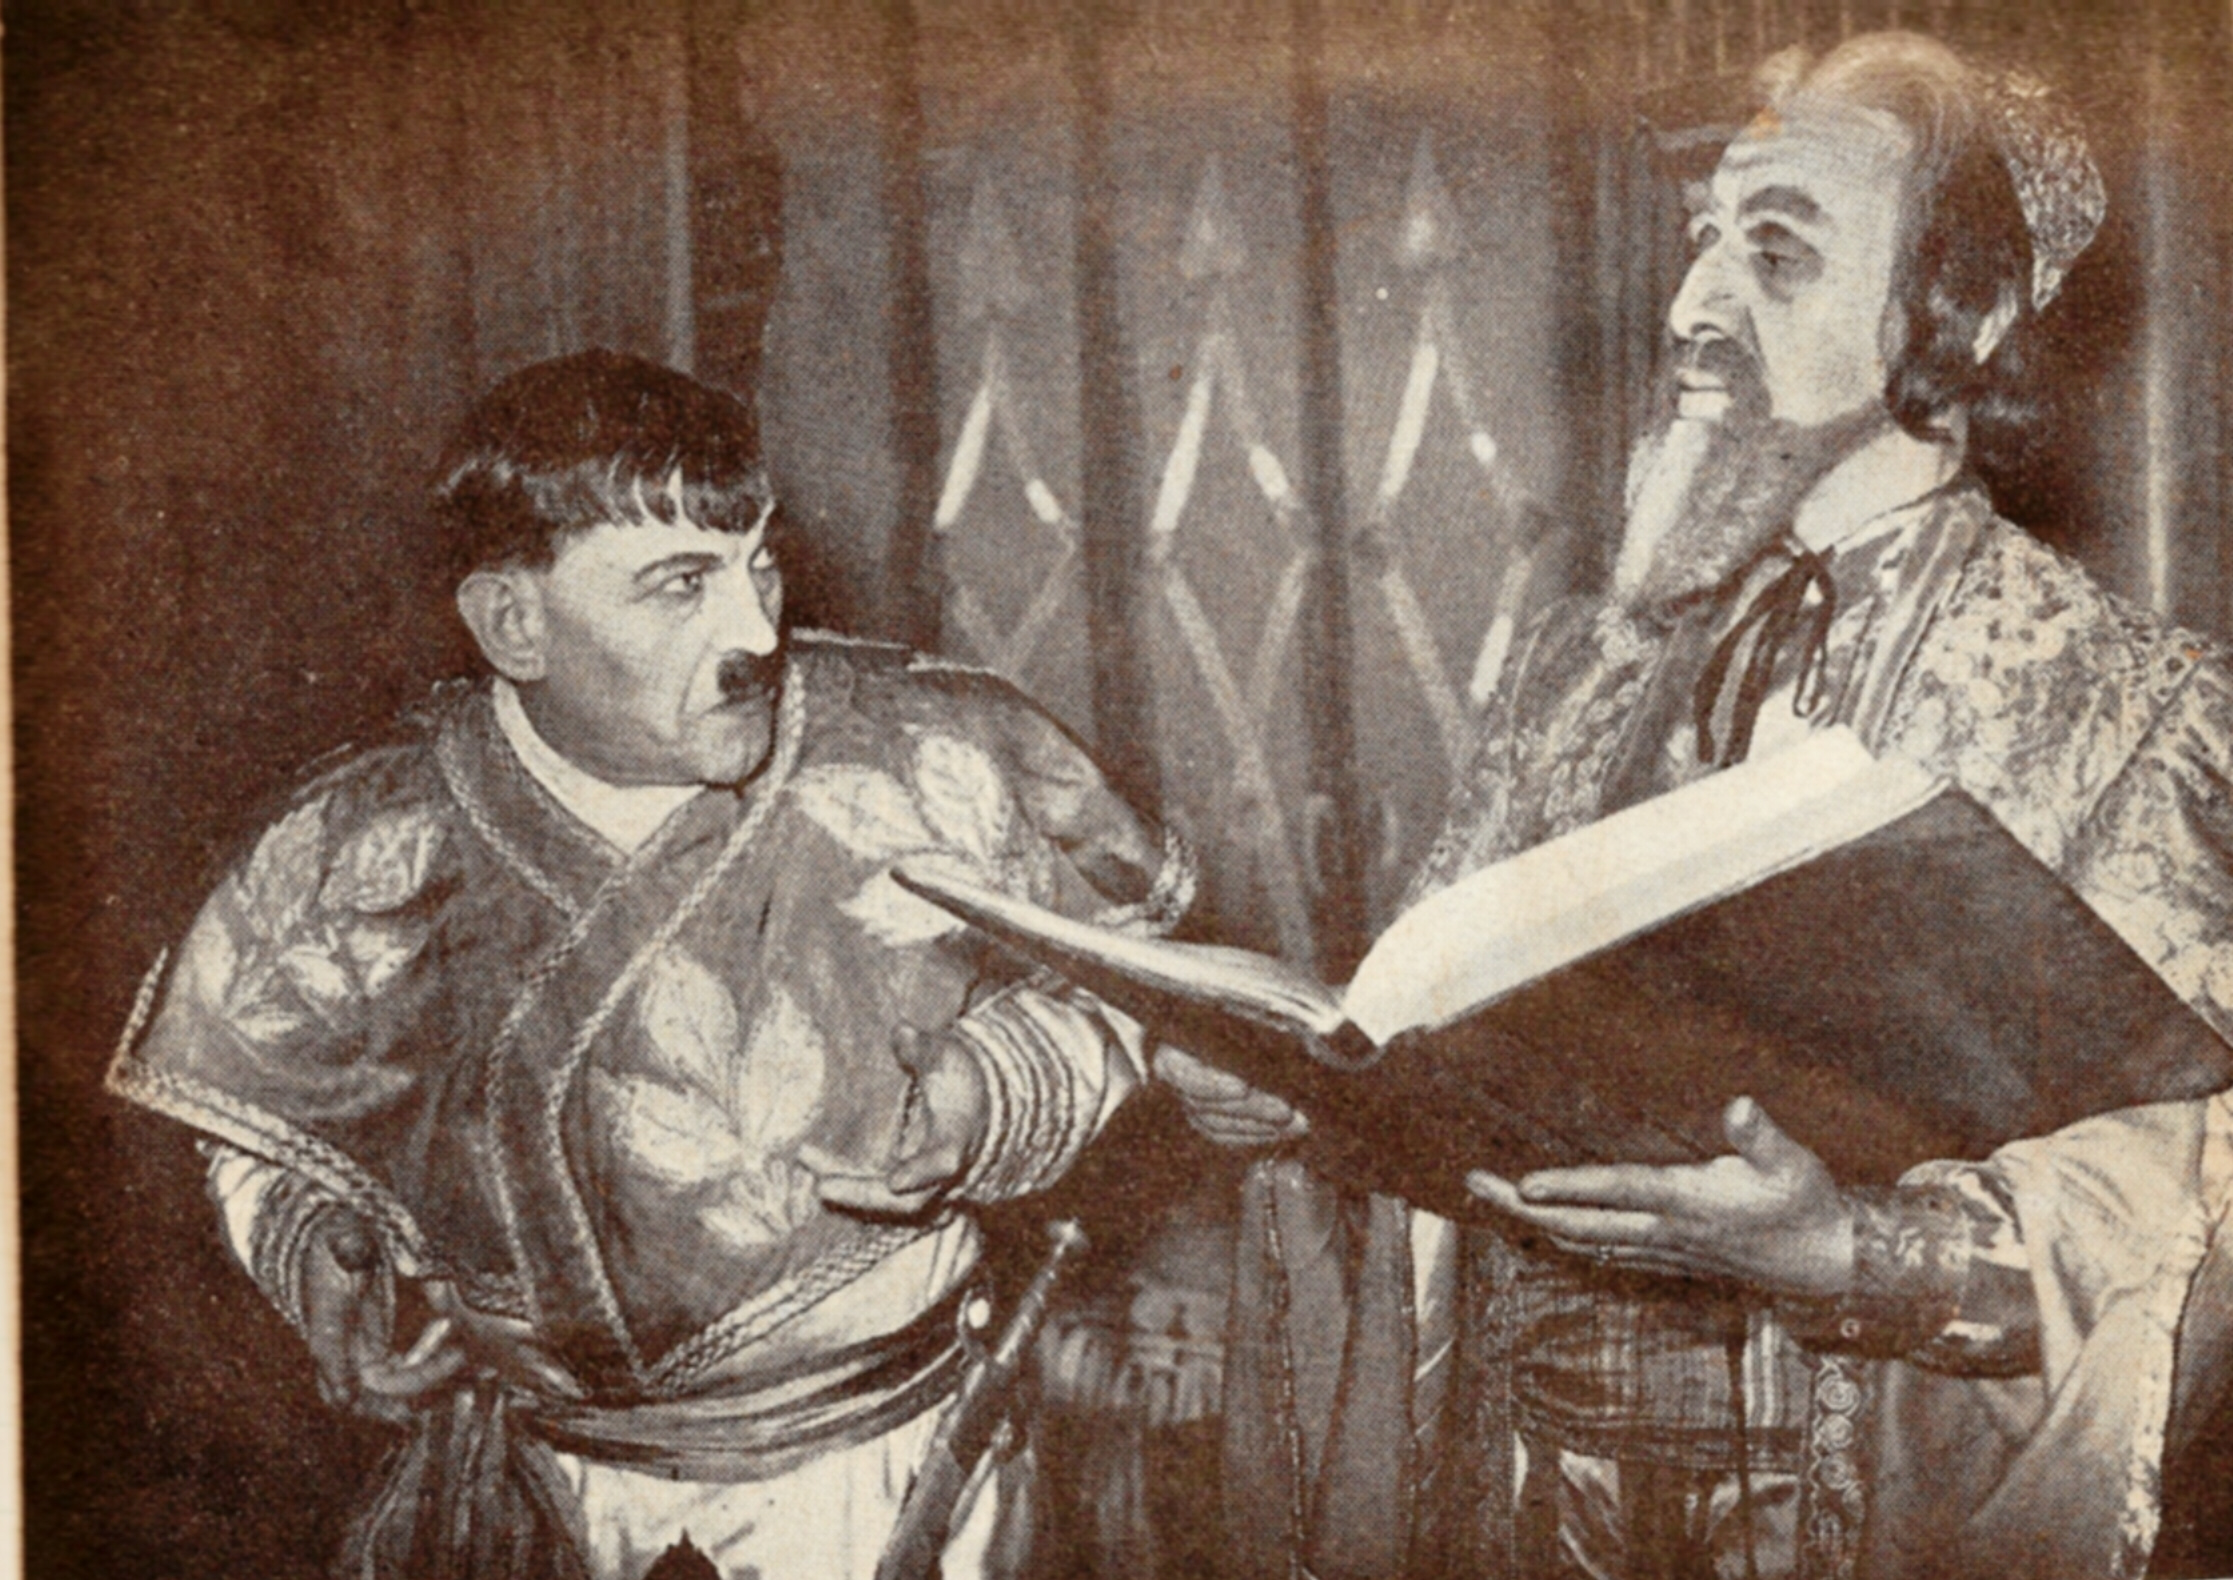 Sulamith - Meier Tzelniker with Joseph Sherman (Haman) made up to look like Hitler